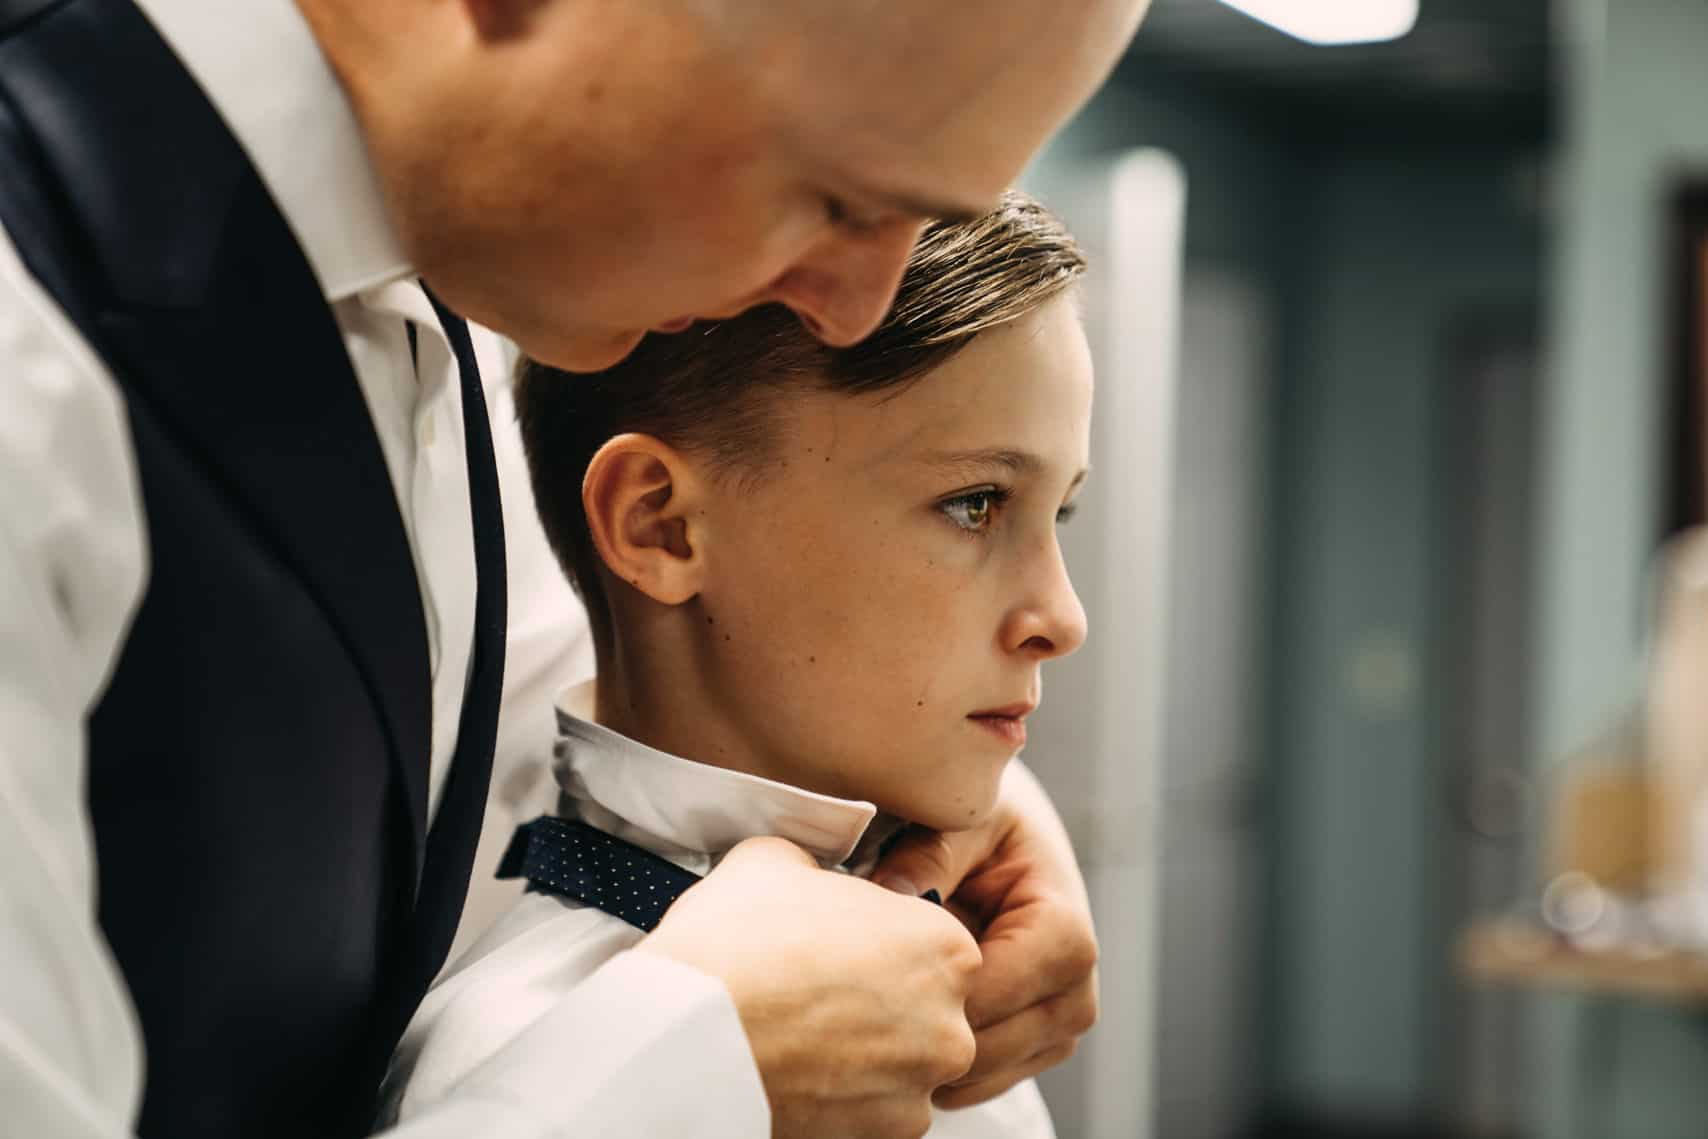 Groom tightens his son's tie in preparation for his wedding day at Woodlands Receptions and Rentals in Piedmont, SD